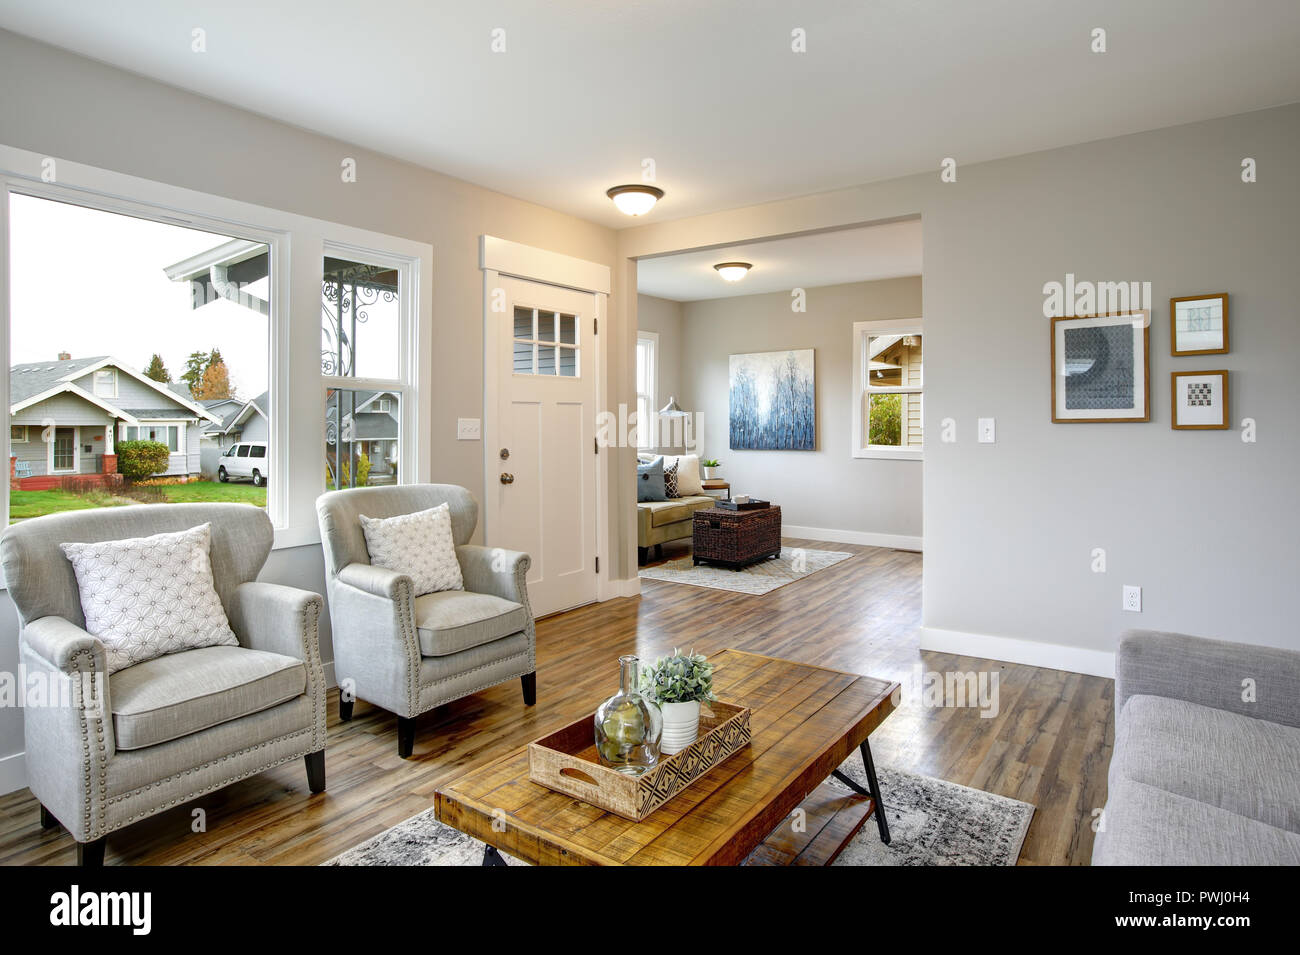 Spacious Living Room With Light Gray Walls And Large Window